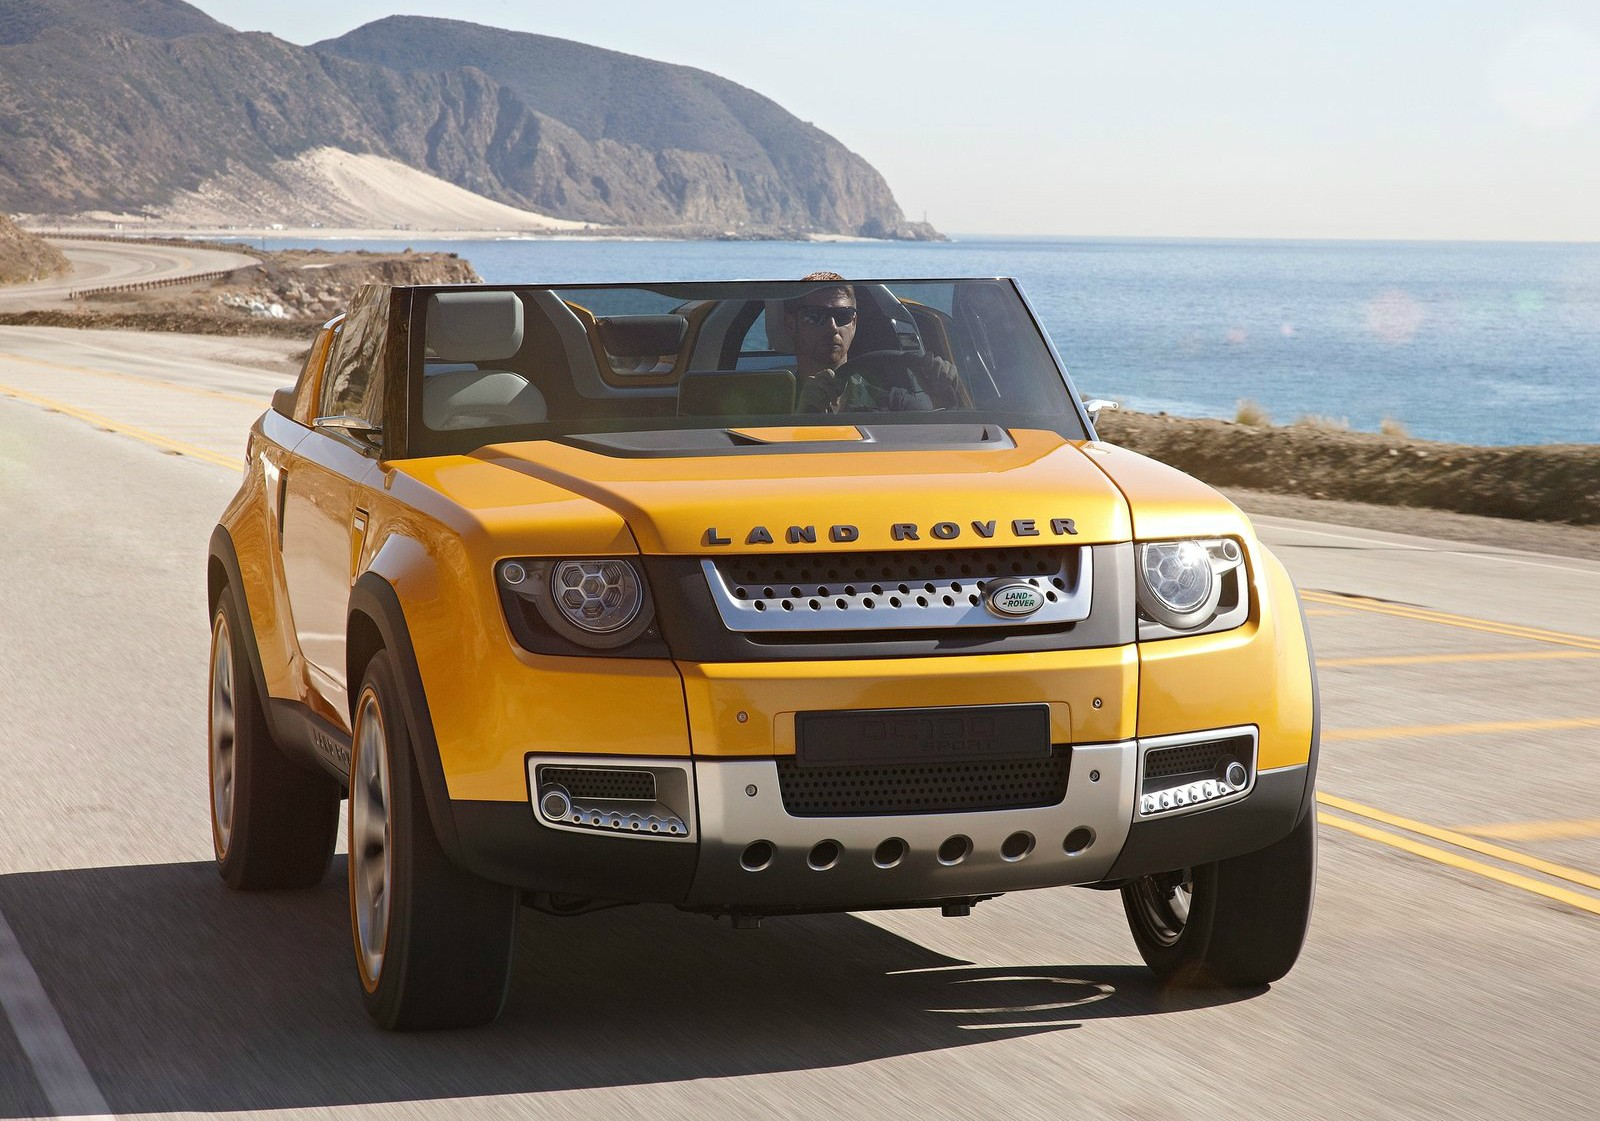 Land Rover Defender Usa >> 2019 Land Rover Defender Already Testing On Public Roads - autoevolution